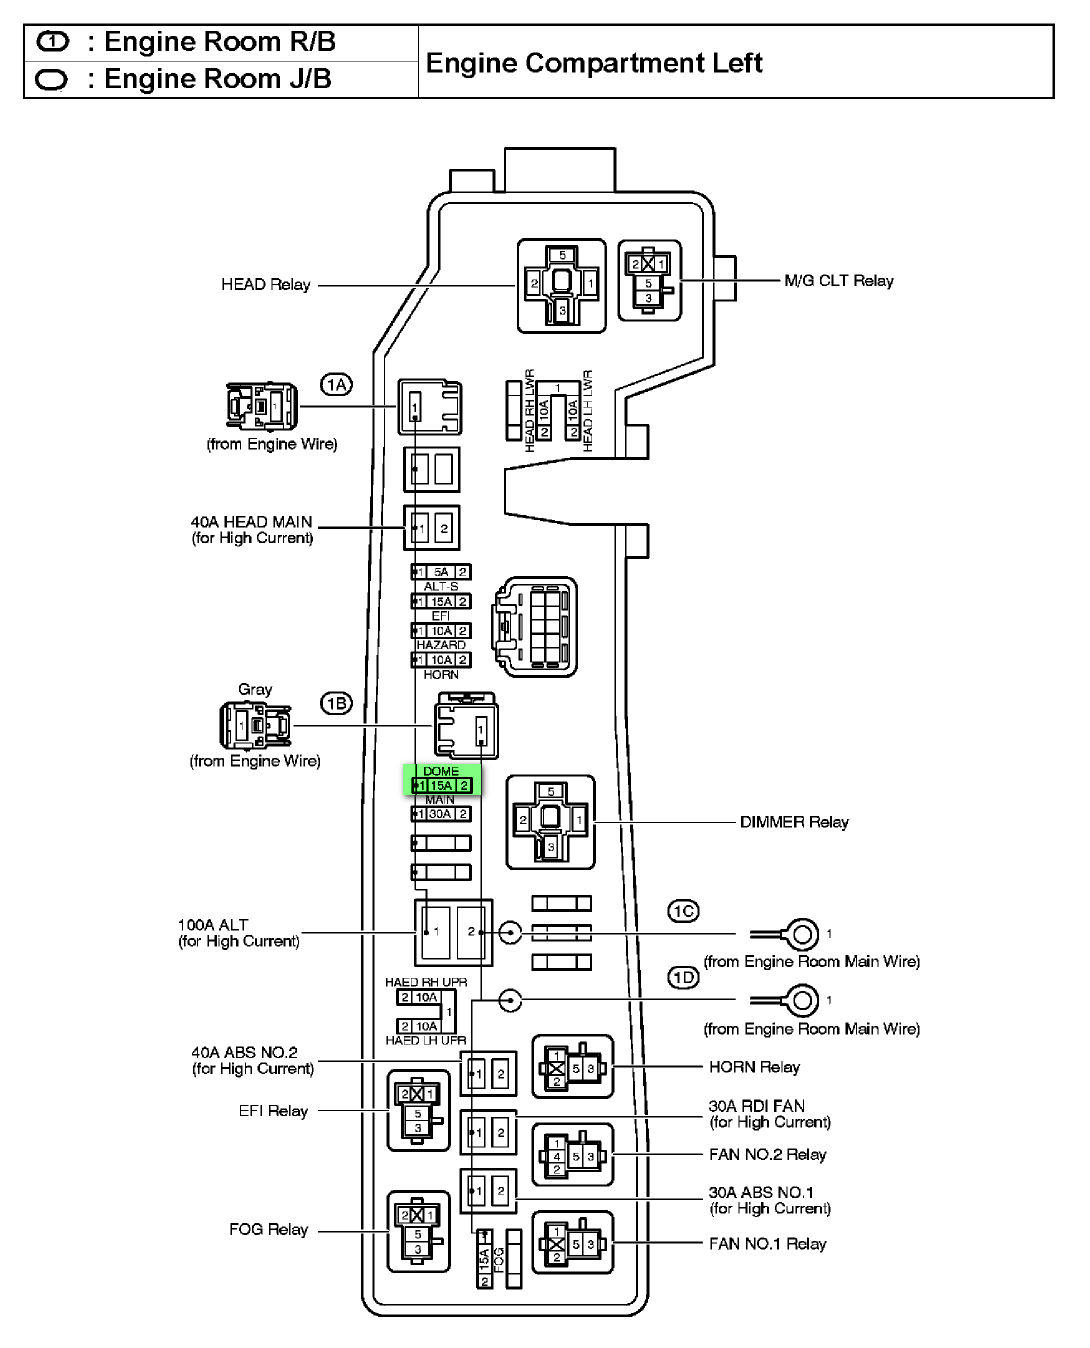 2004 matrix fuse box wiring diagram for you toyota camry fuse diagram toyota matrix fuse box diagram [ 1090 x 1348 Pixel ]